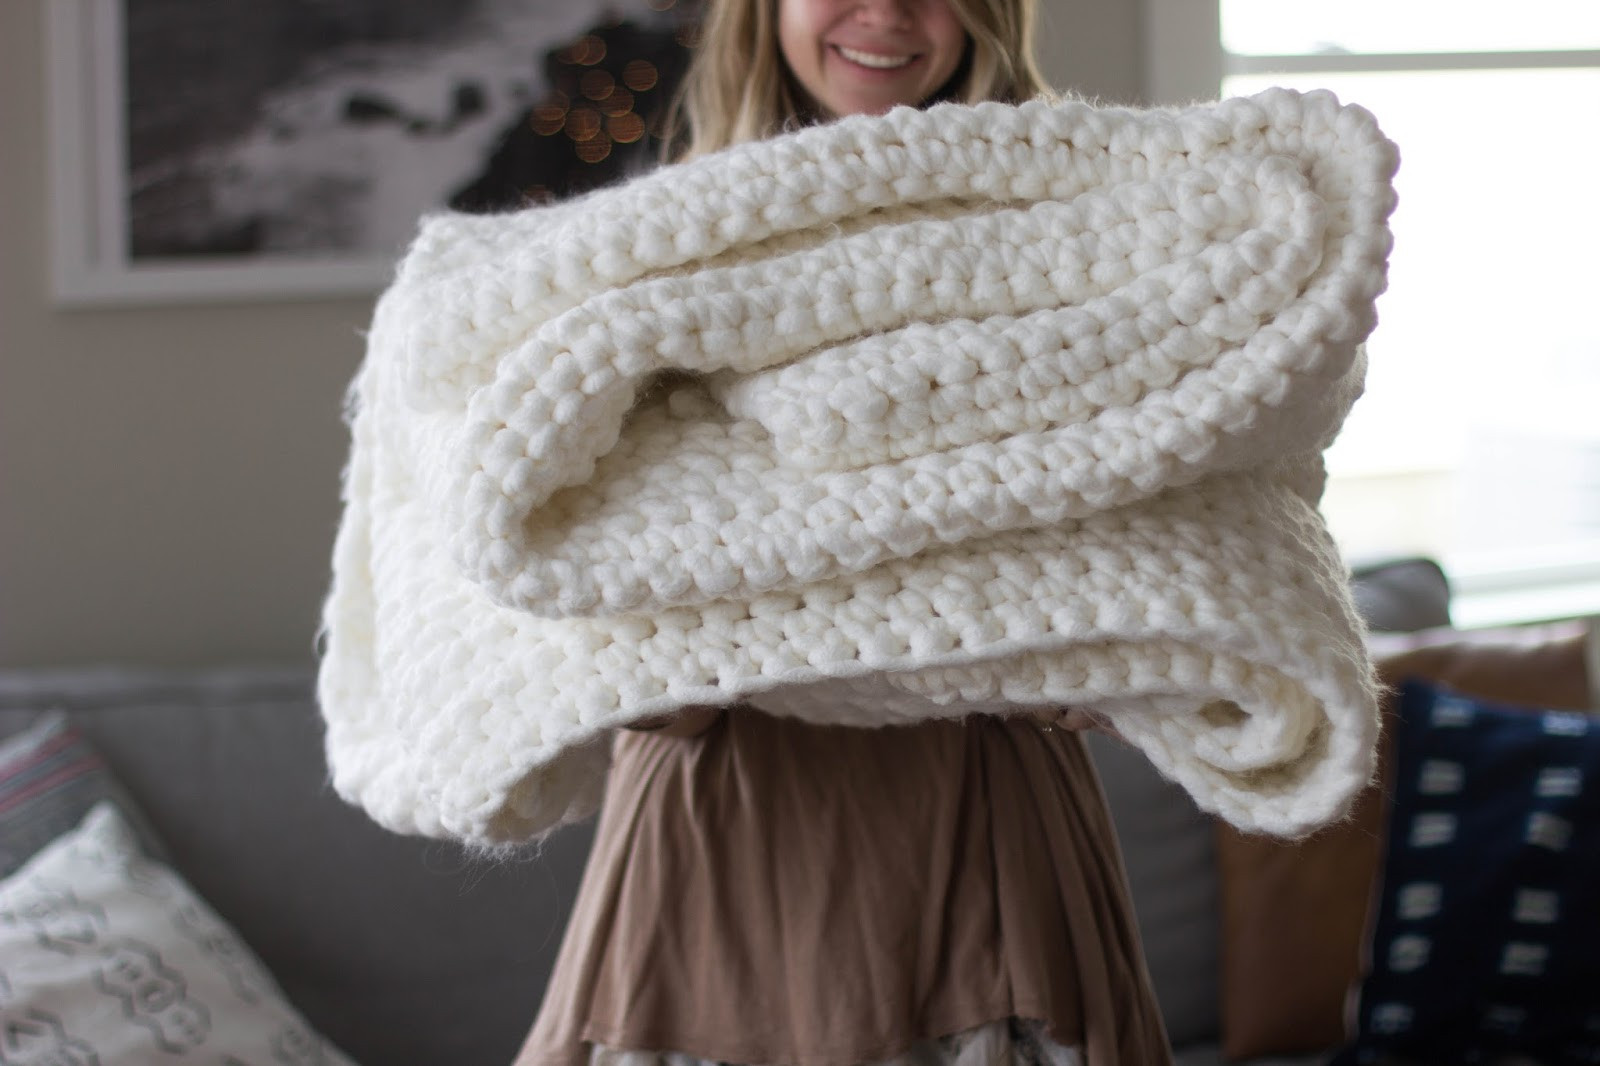 Chunky Crochet Blanket Lovely Always Rooney Learn to Crochet Chunky Blanket Of Awesome 44 Photos Chunky Crochet Blanket